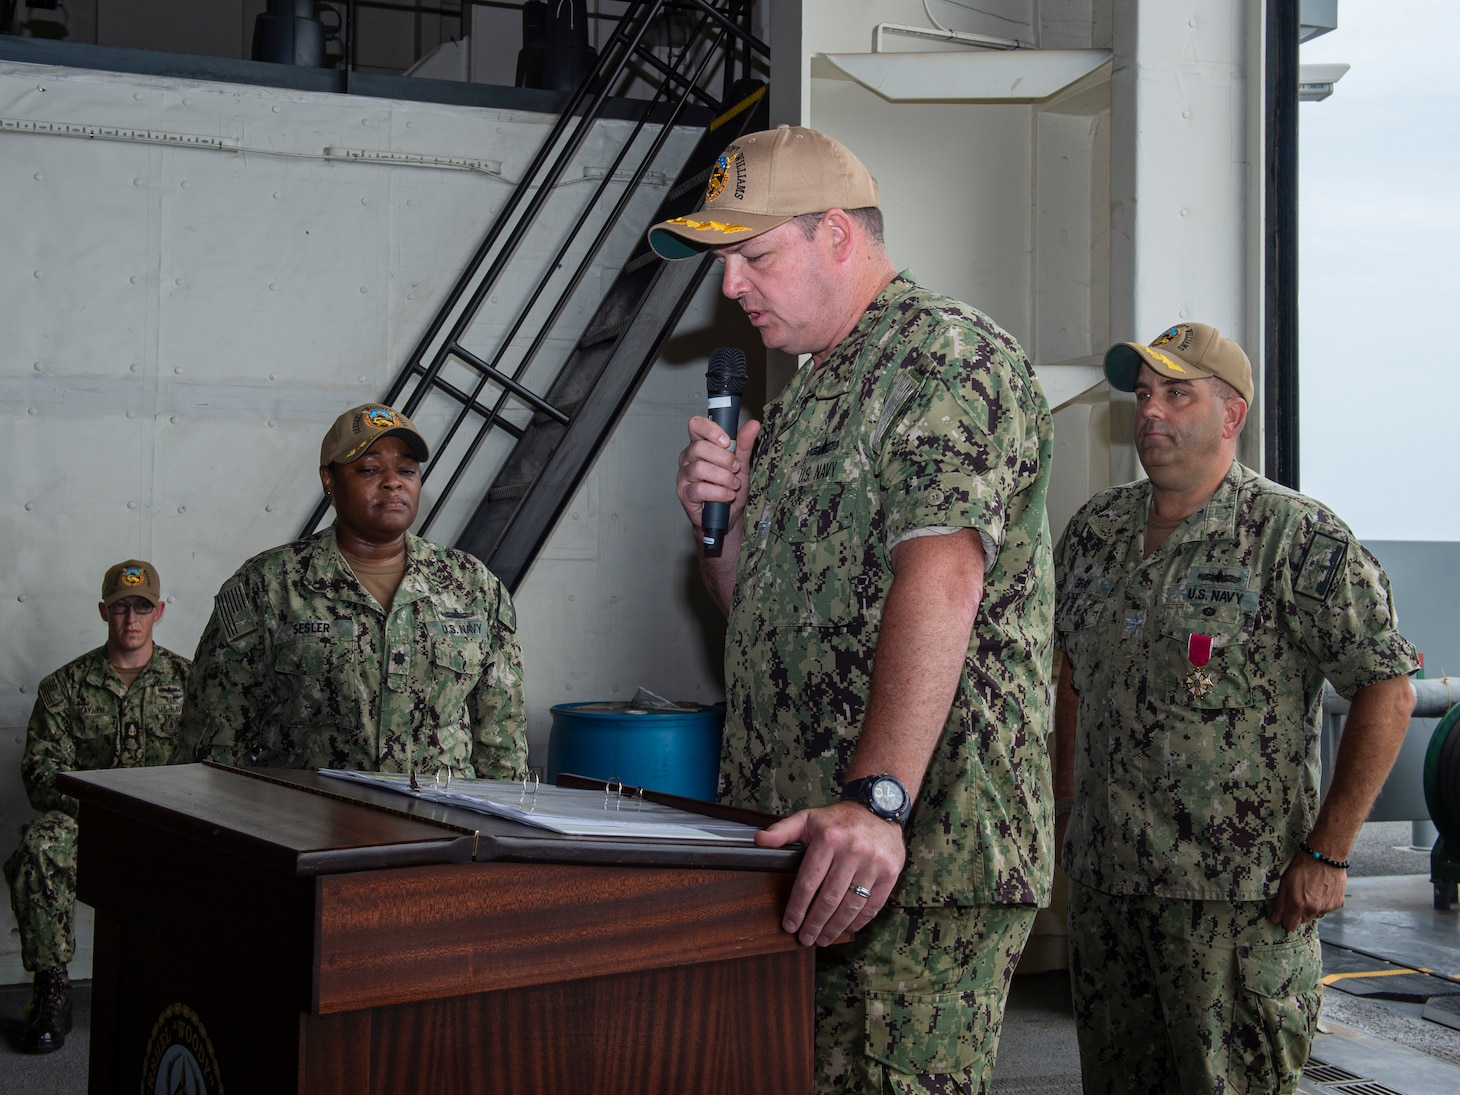 """Commanding Officer Chad Graham addresses his new crew following a change of command ceremony aboard the Expeditionary Sea Base USS Hershel """"Woody"""" Williams (ESB 4), July 25, 2021."""